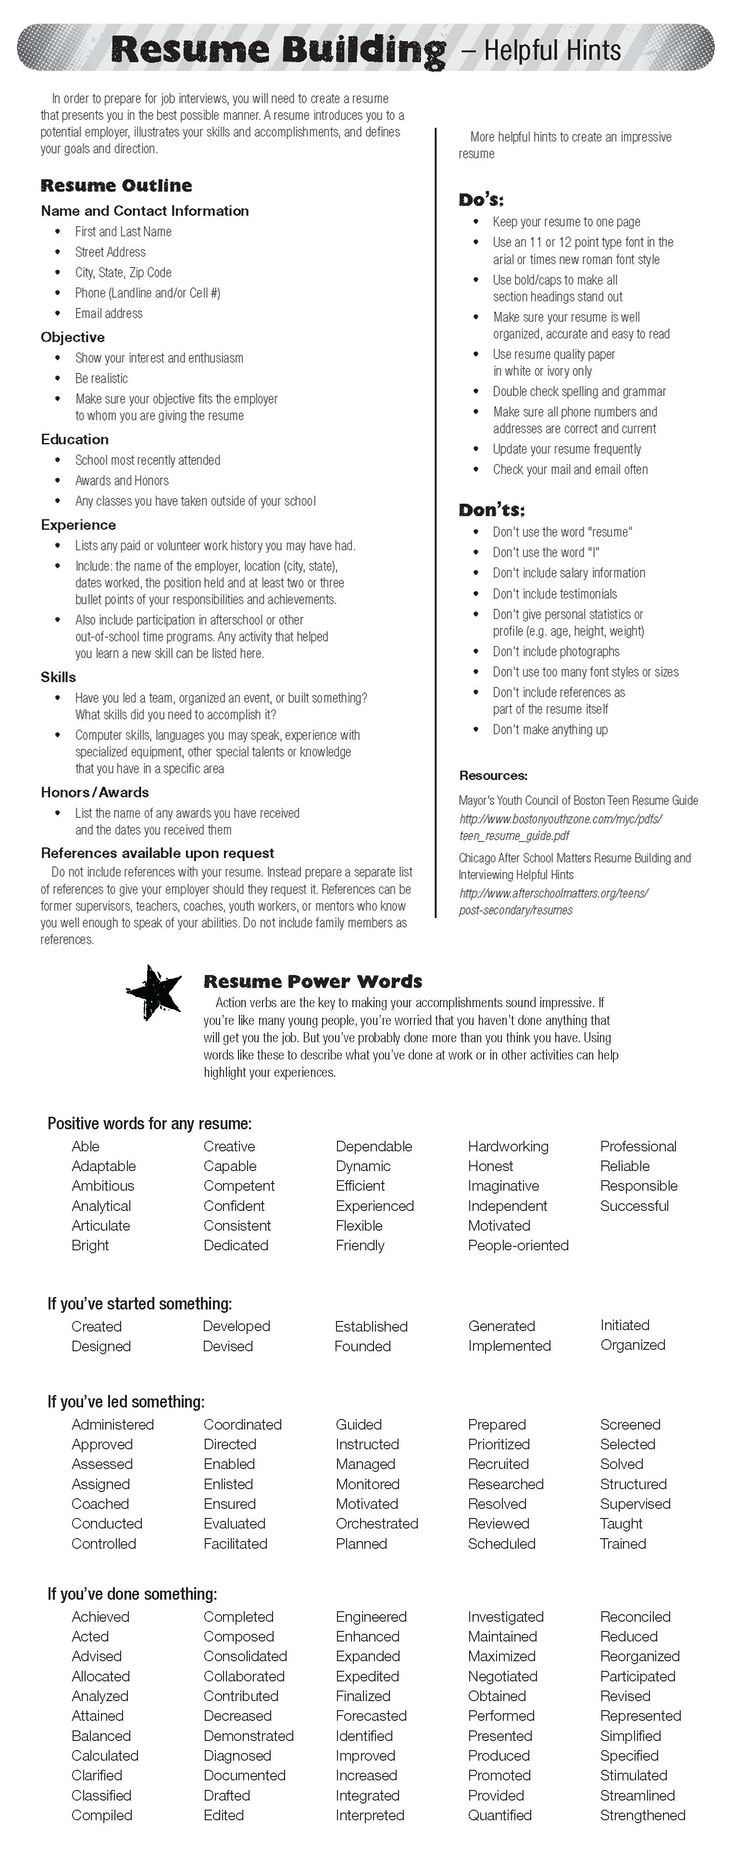 Opposenewapstandardsus  Fascinating  Ideas About Resume On Pinterest  Cv Format Resume Cv And  With Lovely  Ideas About Resume On Pinterest  Cv Format Resume Cv And Resume Templates With Captivating Maintenance Supervisor Resume Also  Page Resume In Addition Painter Resume And Smart Resume As Well As Should Resume Be One Page Additionally Top Skills For Resume From Pinterestcom With Opposenewapstandardsus  Lovely  Ideas About Resume On Pinterest  Cv Format Resume Cv And  With Captivating  Ideas About Resume On Pinterest  Cv Format Resume Cv And Resume Templates And Fascinating Maintenance Supervisor Resume Also  Page Resume In Addition Painter Resume From Pinterestcom